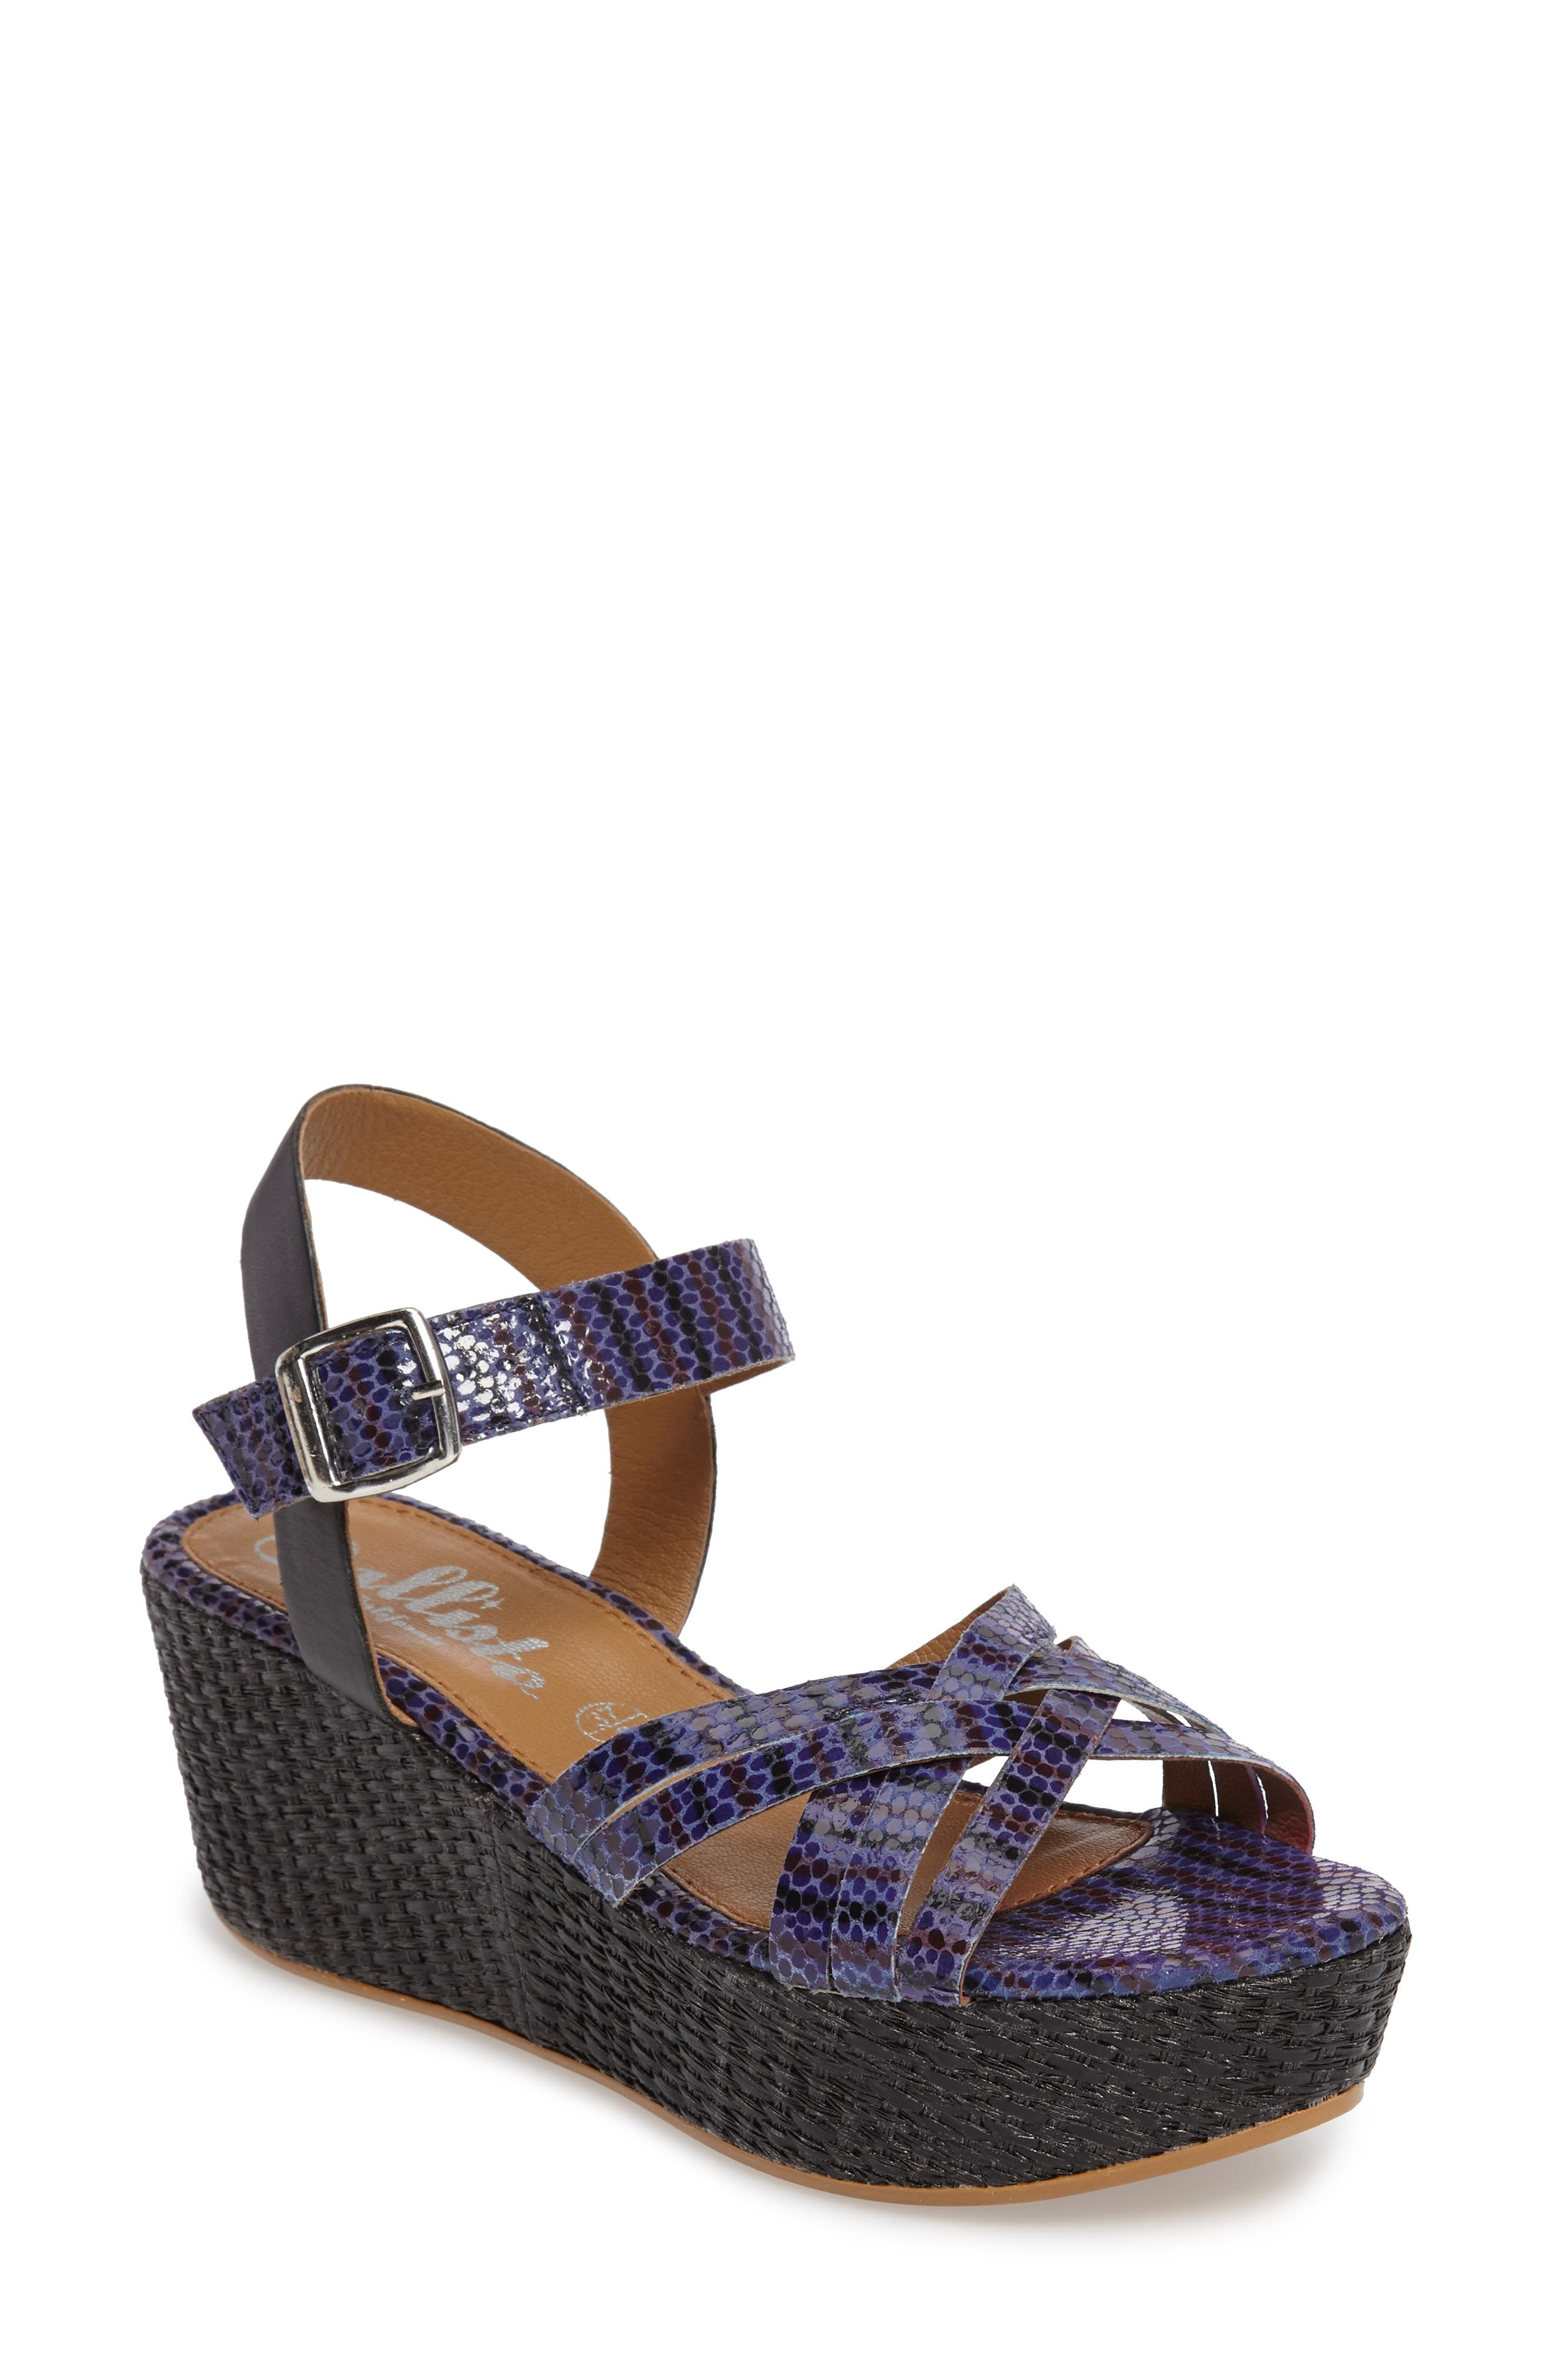 Valencia Platform Wedge Sandal,                             Alternate thumbnail 2, color,                             429